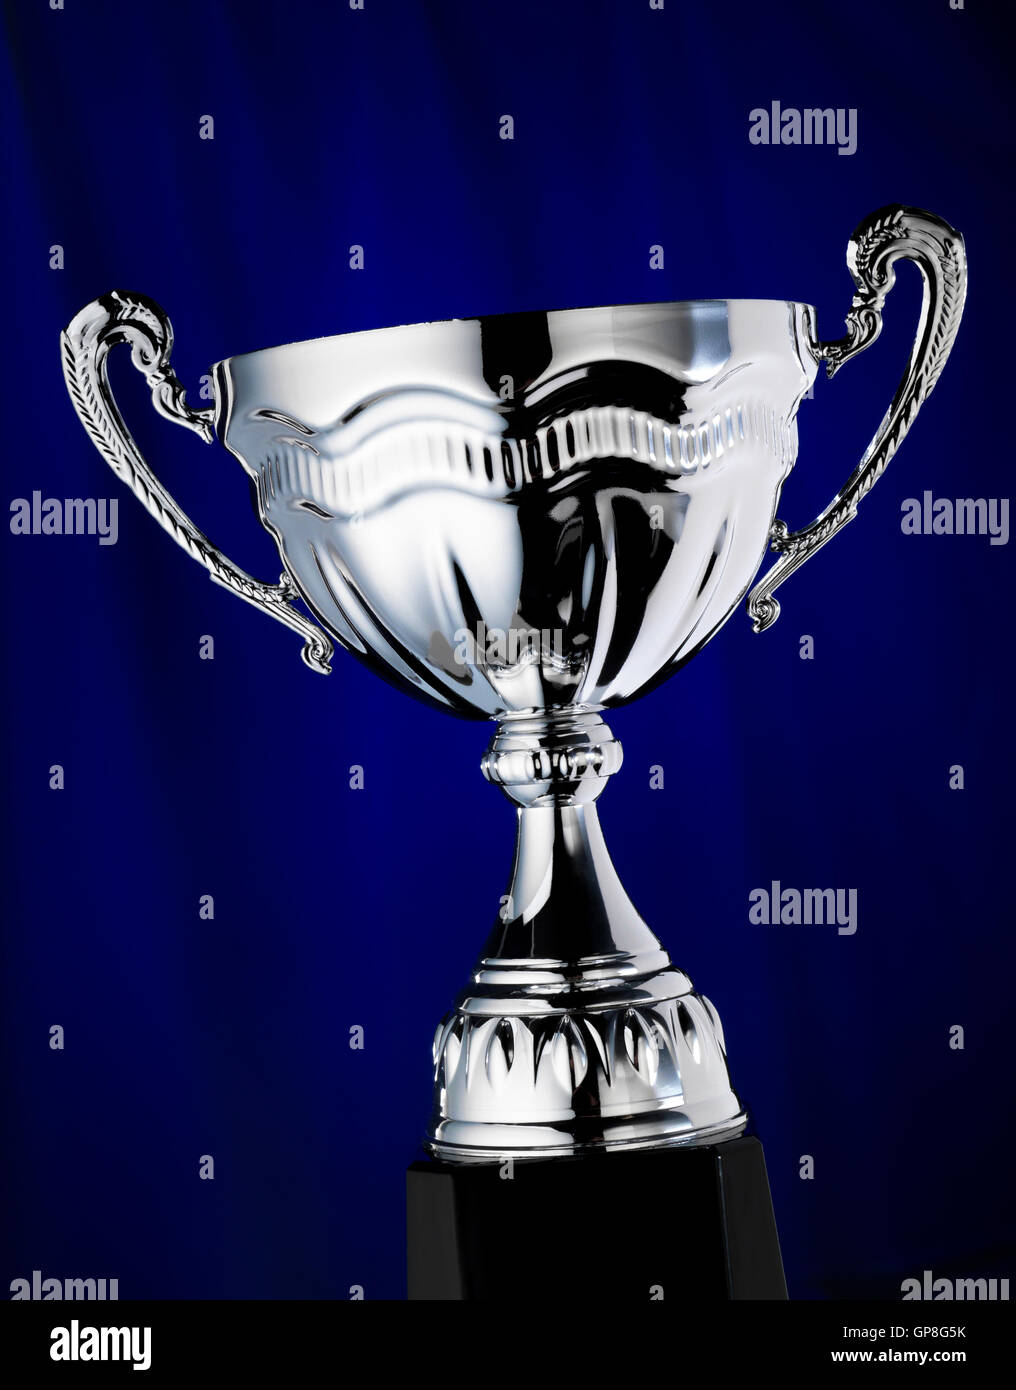 Trophy with a blue background - Stock Image